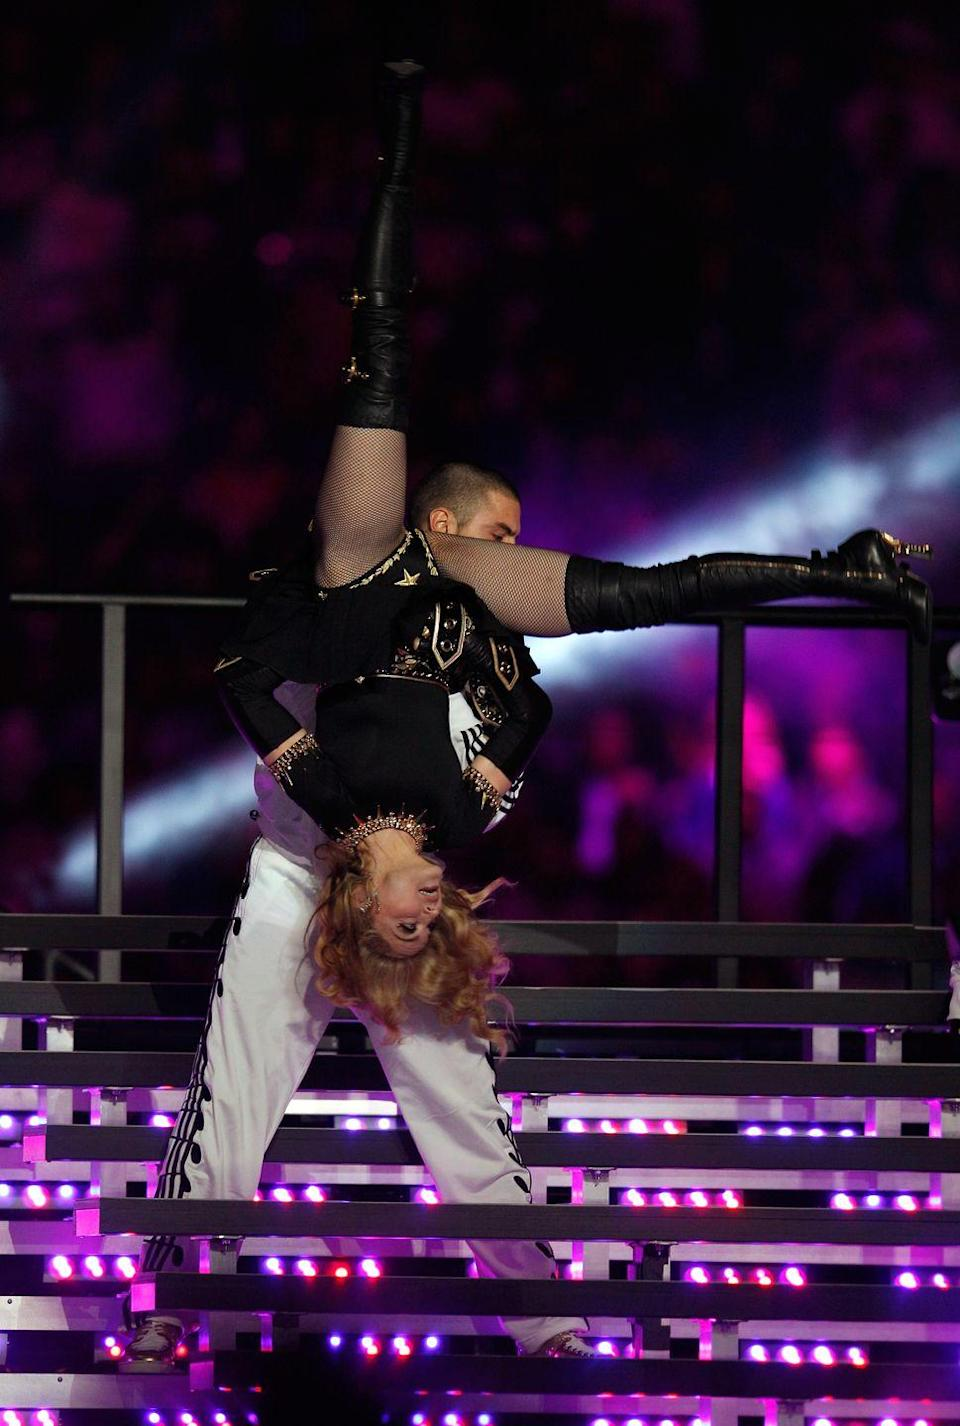 <p>Meanwhile, Madonna was busy doing this during the same show.</p>